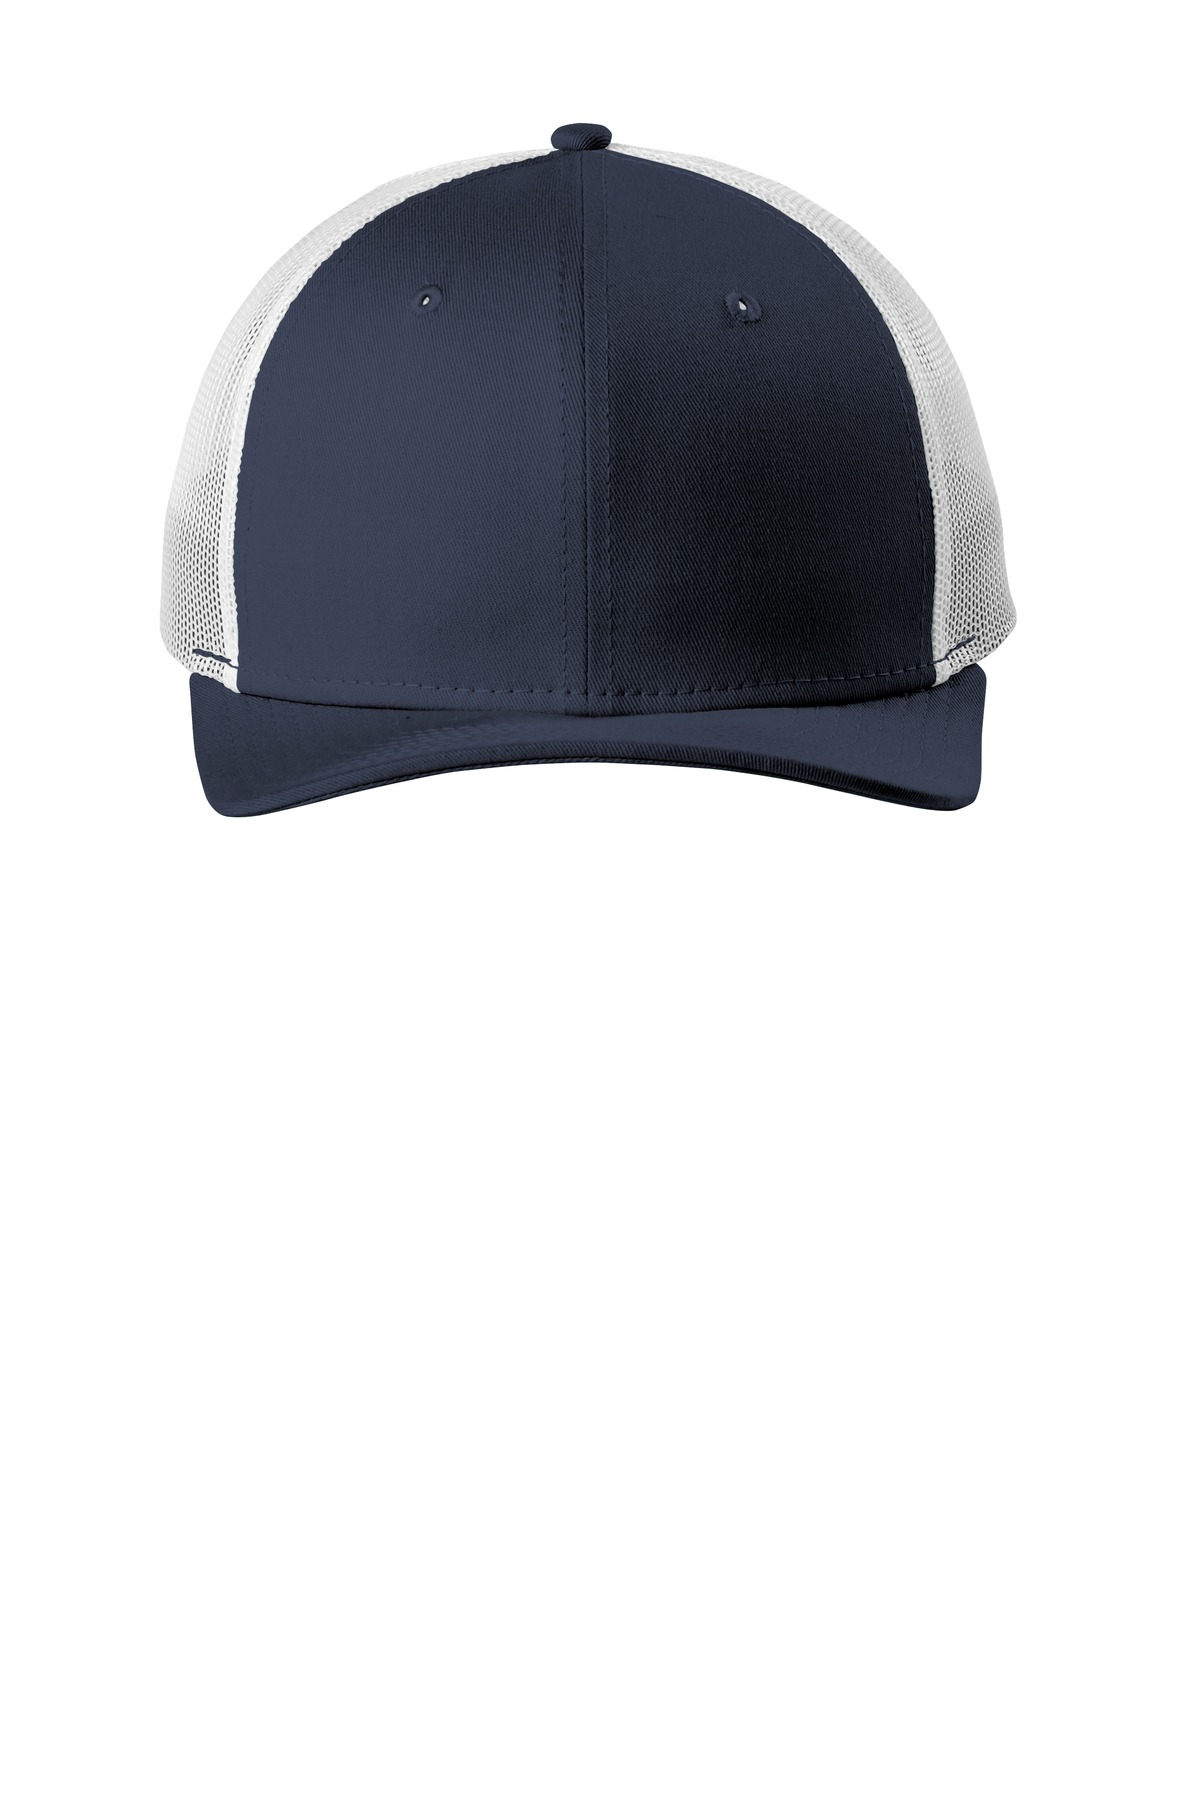 New Era  ®   Snapback Low Profile Trucker Cap   NE207 - Deep Navy/ White